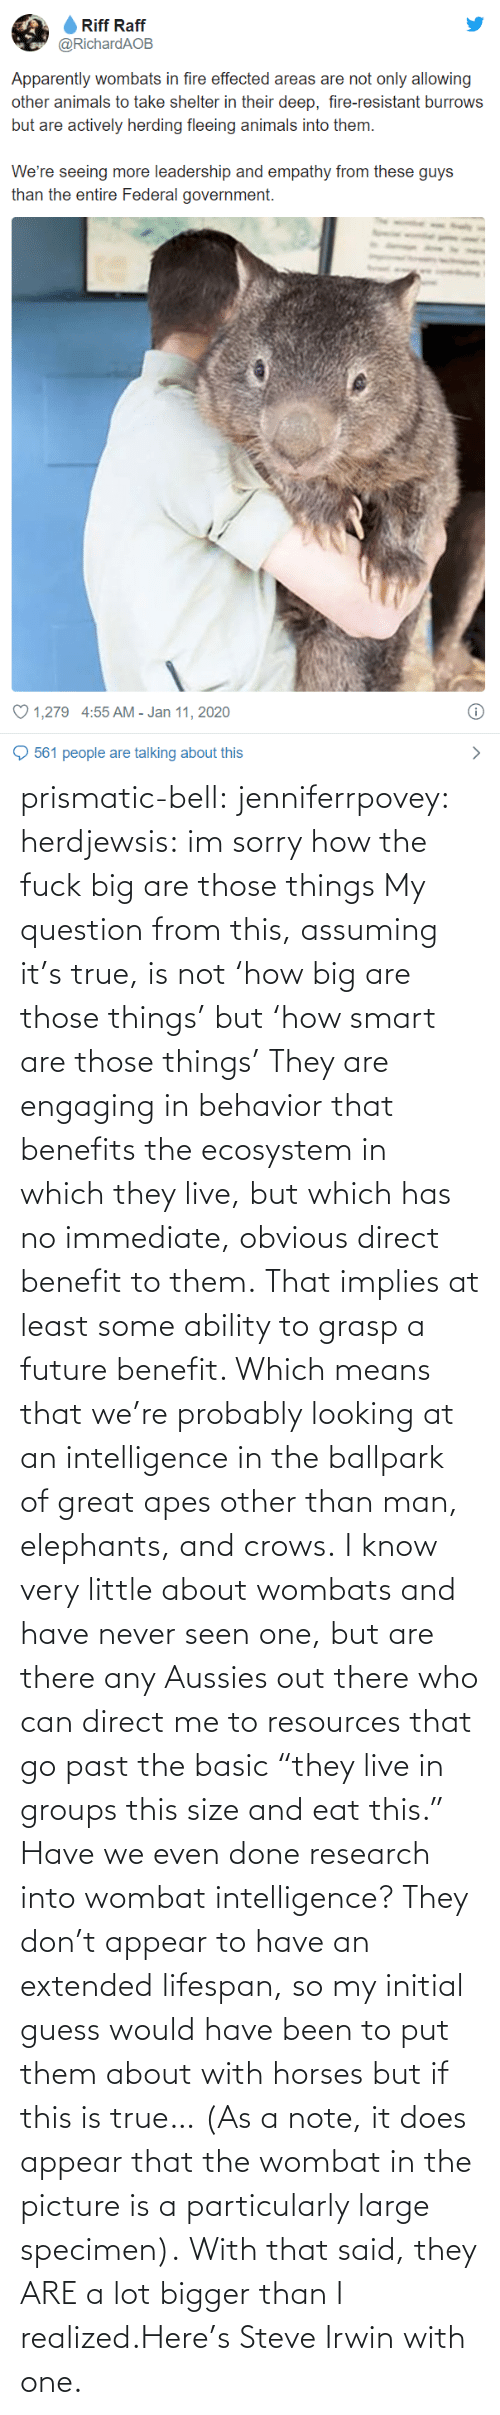 "Is A: prismatic-bell:  jenniferrpovey: herdjewsis: im sorry how the fuck big are those things My question from this, assuming it's true, is not 'how big are those things' but 'how smart are those things' They are engaging in behavior that benefits the ecosystem in which they live, but which has no immediate, obvious direct benefit to them. That implies at least some ability to grasp a future benefit. Which means that we're probably looking at an intelligence in the ballpark of great apes other than man, elephants, and crows. I know very little about wombats and have never seen one, but are there any Aussies out there who can direct me to resources that go past the basic ""they live in groups this size and eat this."" Have we even done research into wombat intelligence? They don't appear to have an extended lifespan, so my initial guess would have been to put them about with horses but if this is true… (As a note, it does appear that the wombat in the picture is a particularly large specimen).  With that said, they ARE a lot bigger than I realized.Here's Steve Irwin with one."